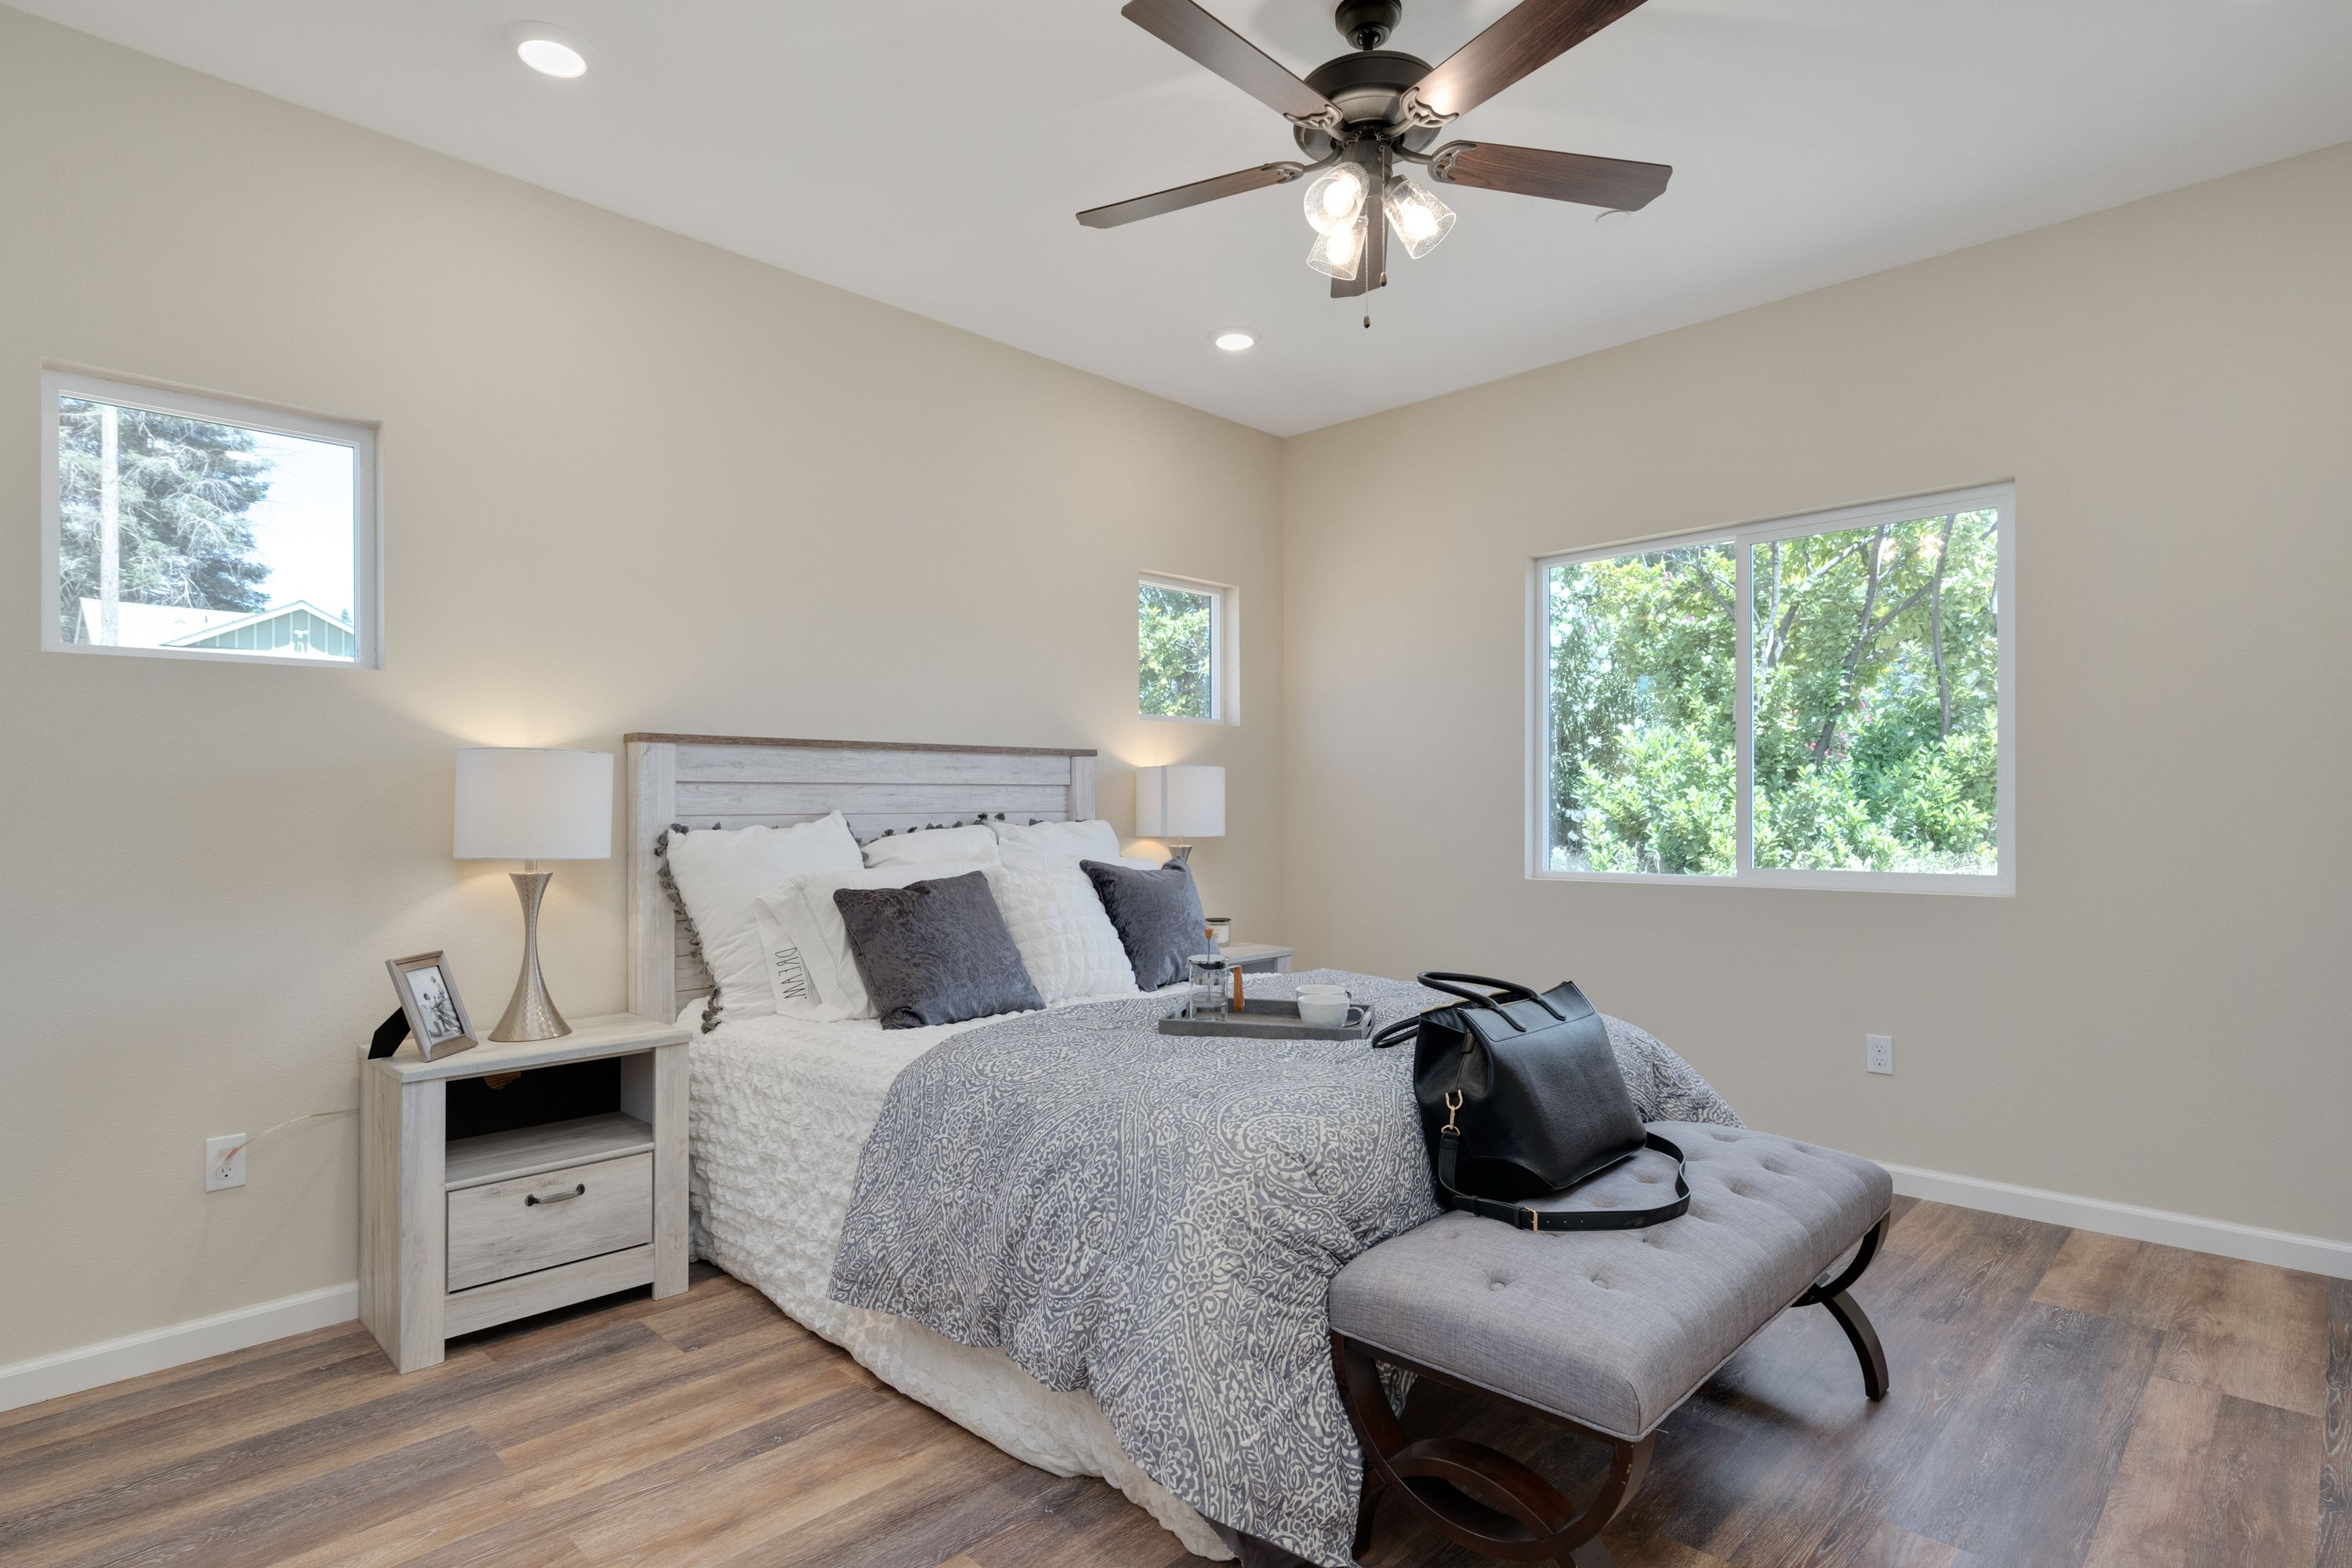 Bedroom featured in the 280 Craft Lane By Silvermark Luxury Homes in Chico, CA